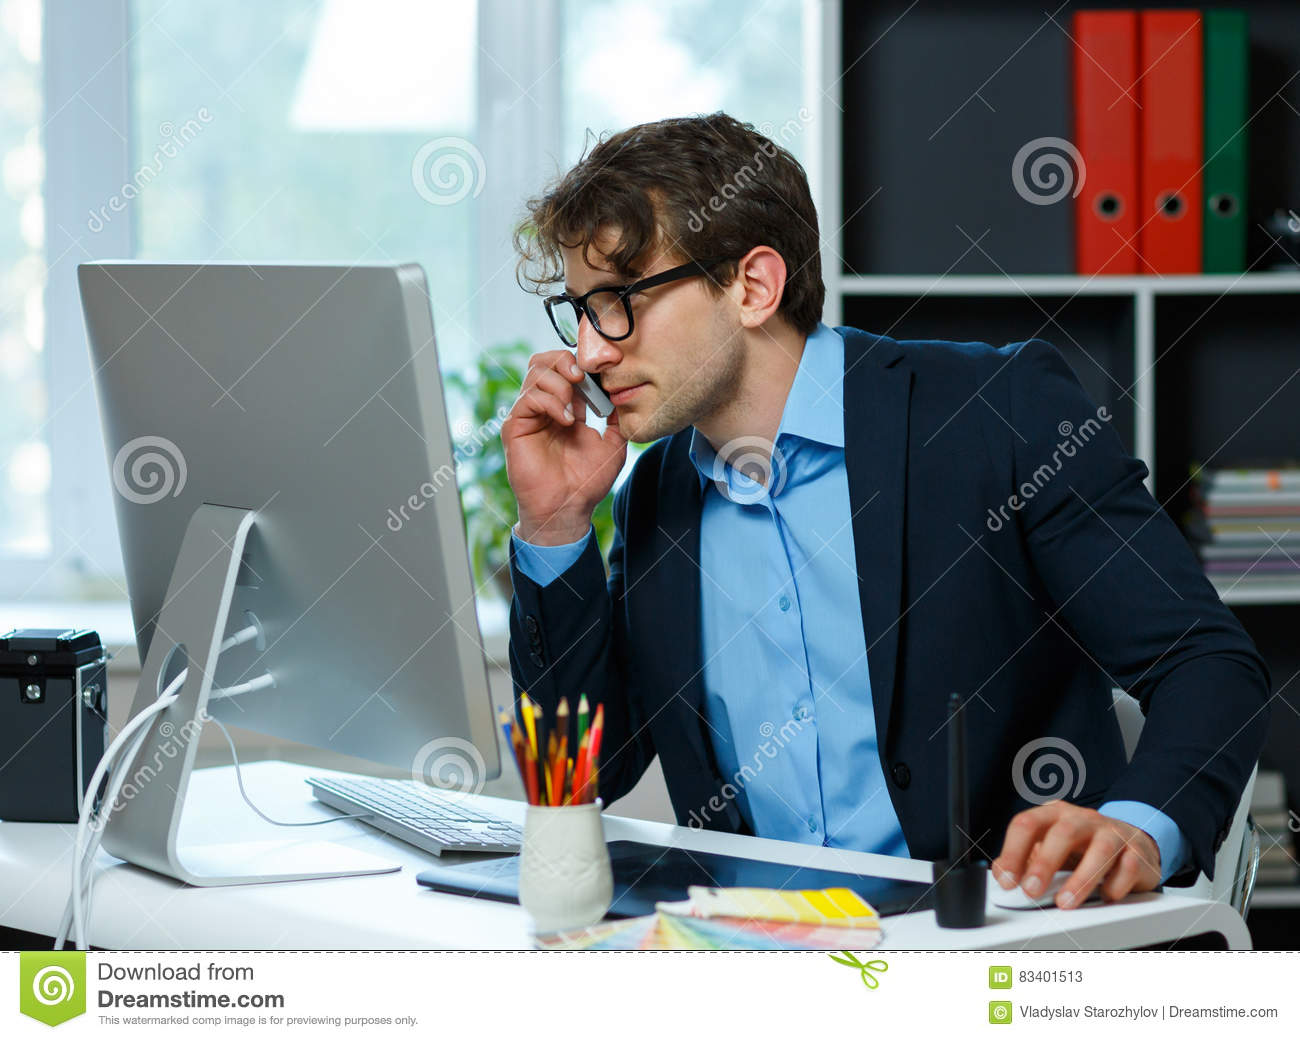 Handsome young man working from home office